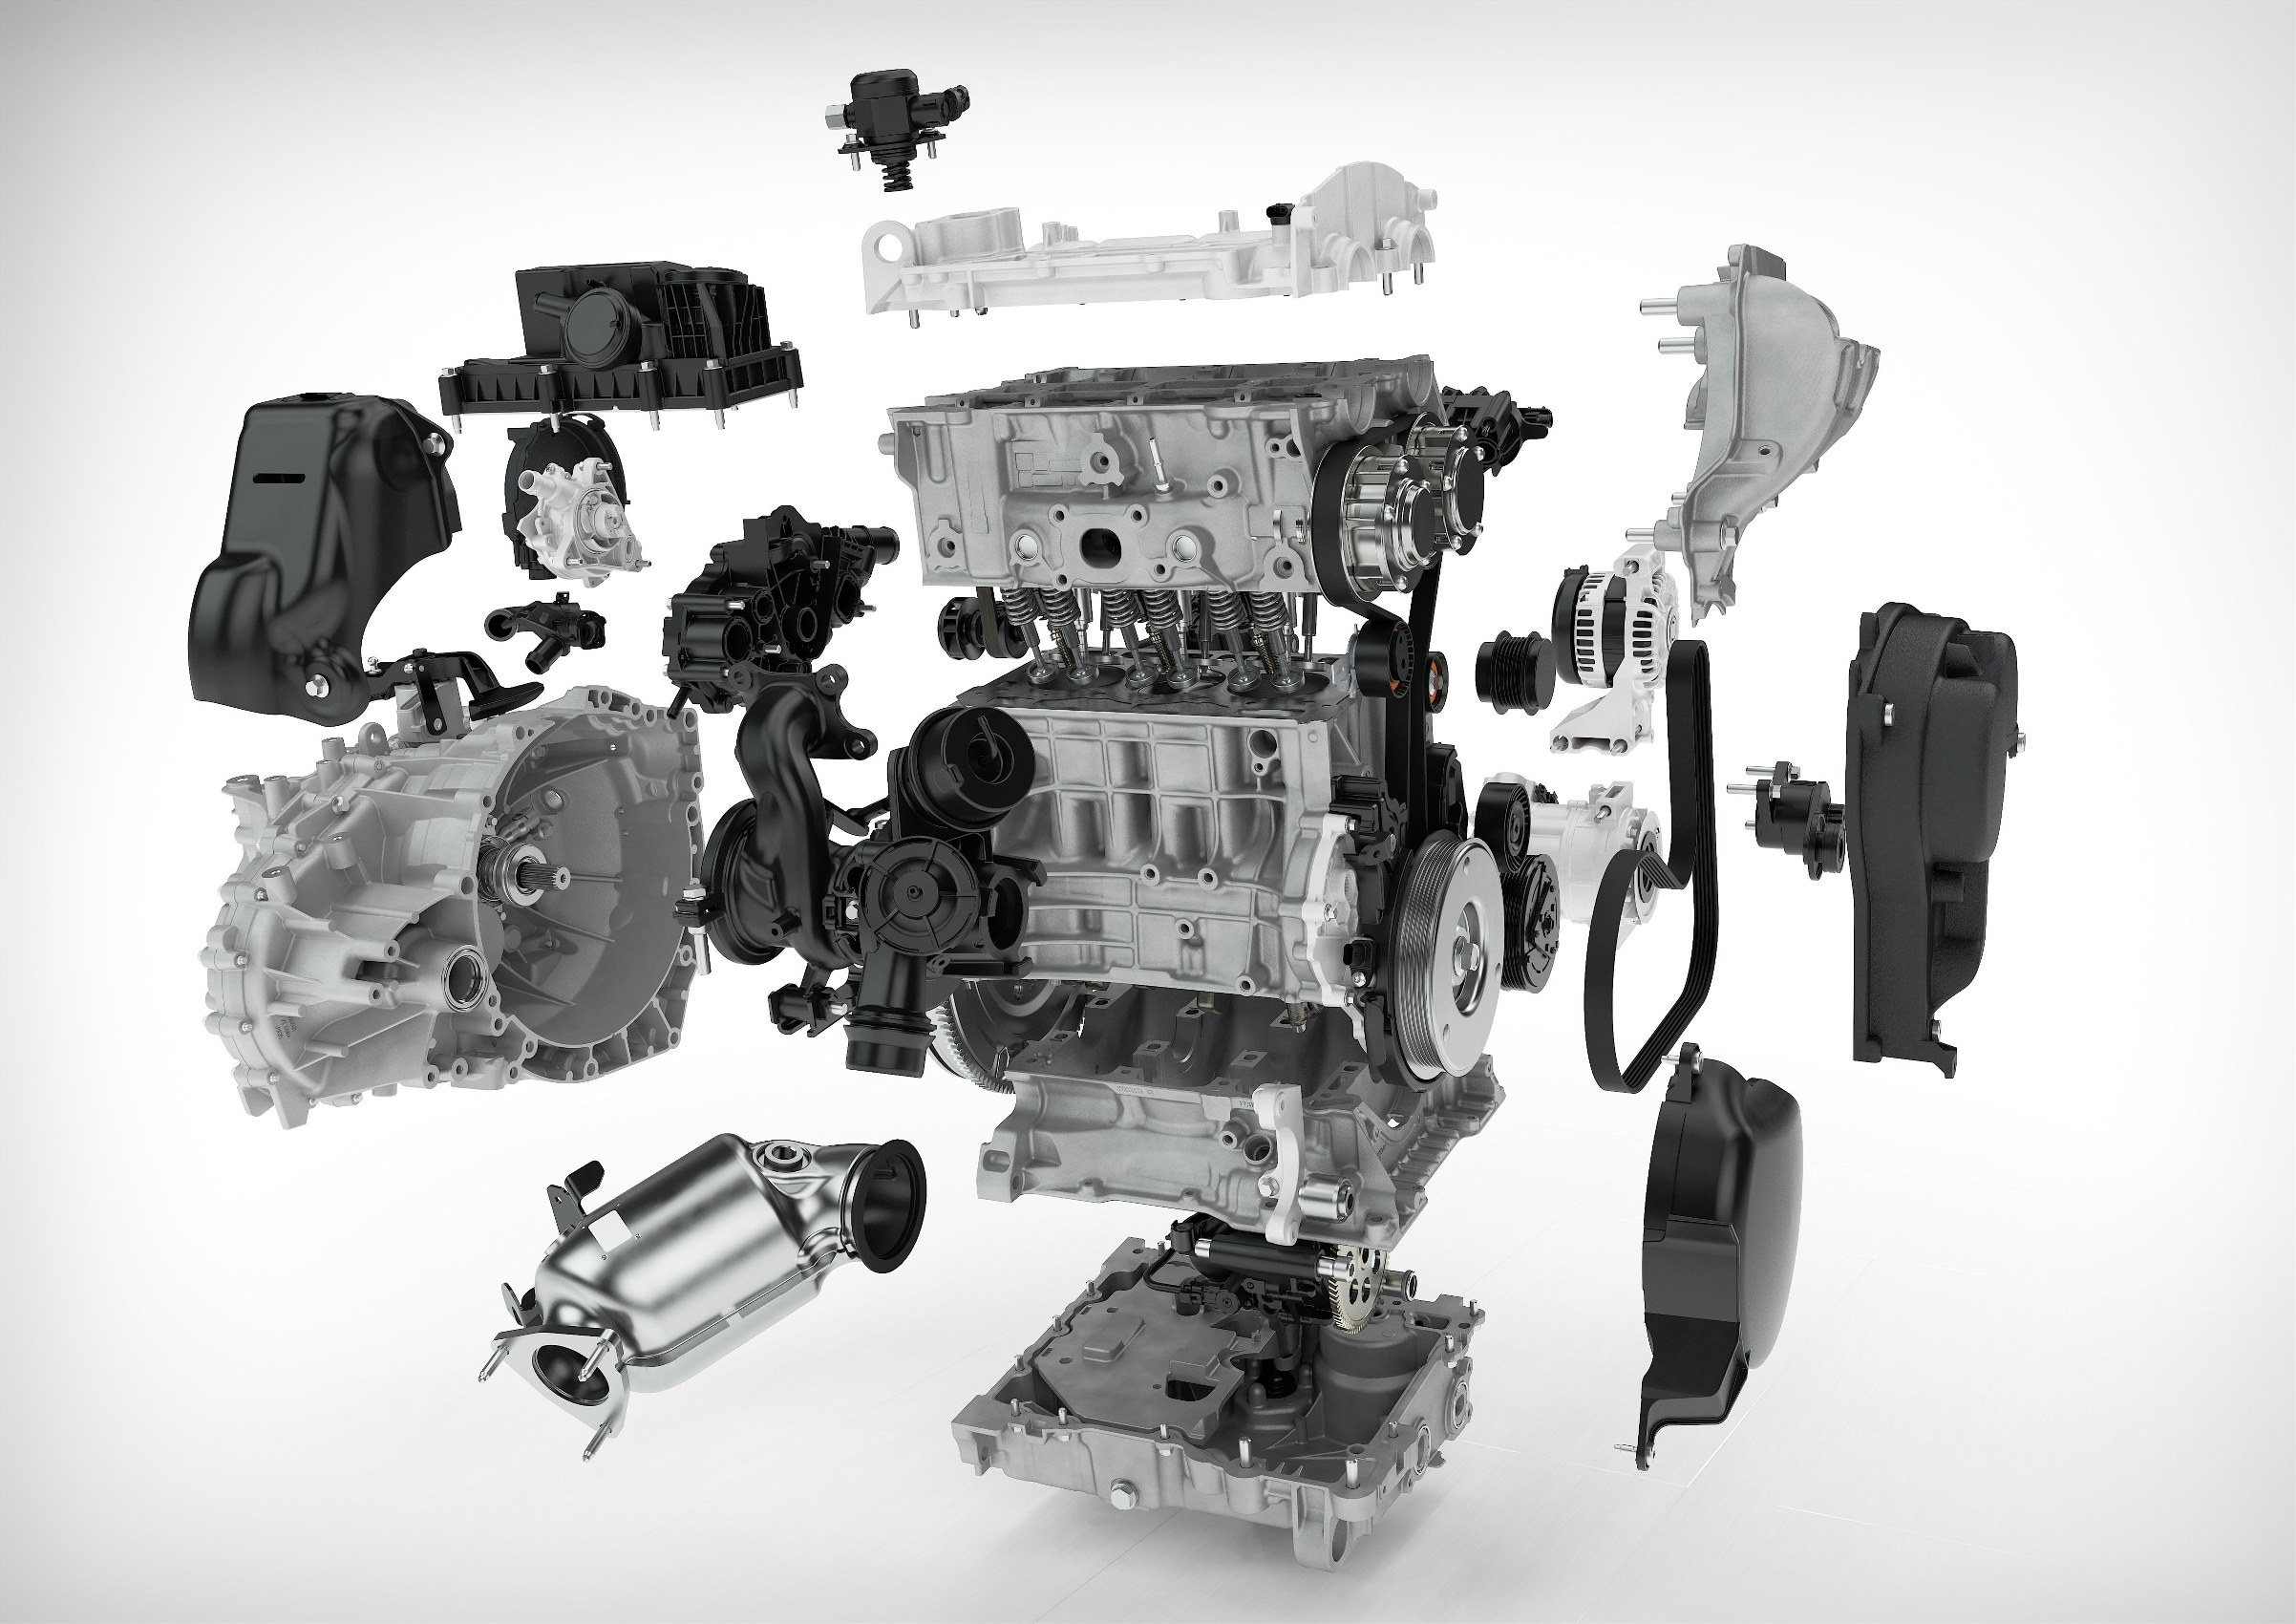 Three Cylinder Engine To Drive Hybrid Volvo X40s Exploded Diagram Related Keywords Suggestions